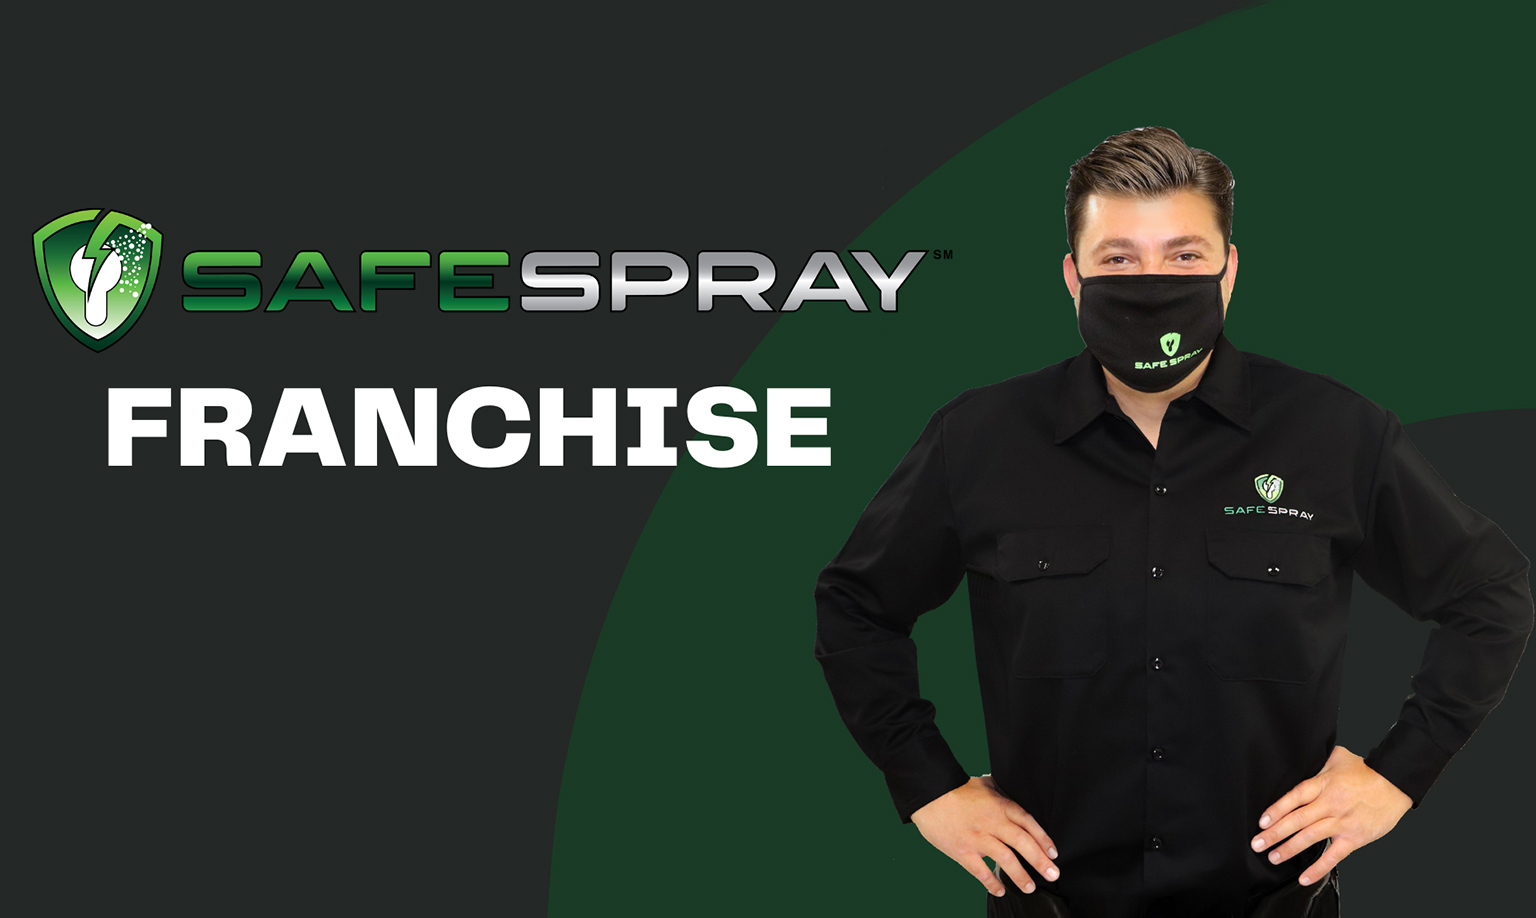 5 Ways Becoming a Safe Spray Franchisee Helps Your Community